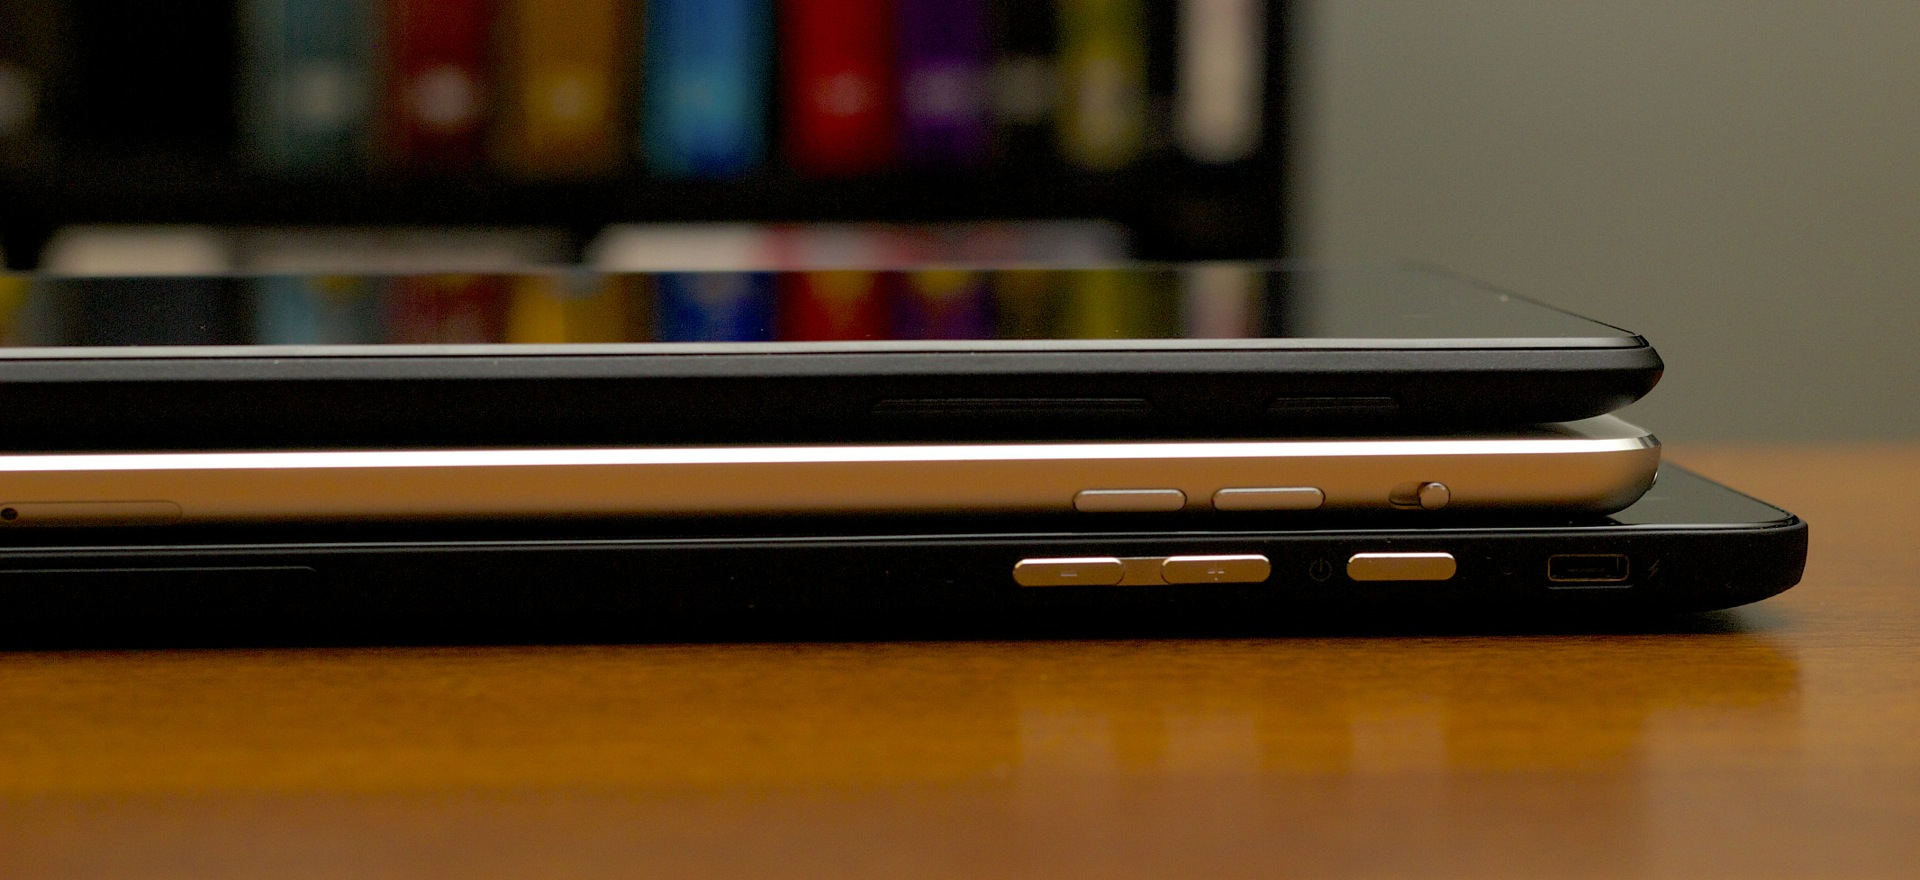 The Venue 8 Pro (bottom) is a little thicker than either the iPad or the Nexus 7. The micro USB charging port is just above the power button.